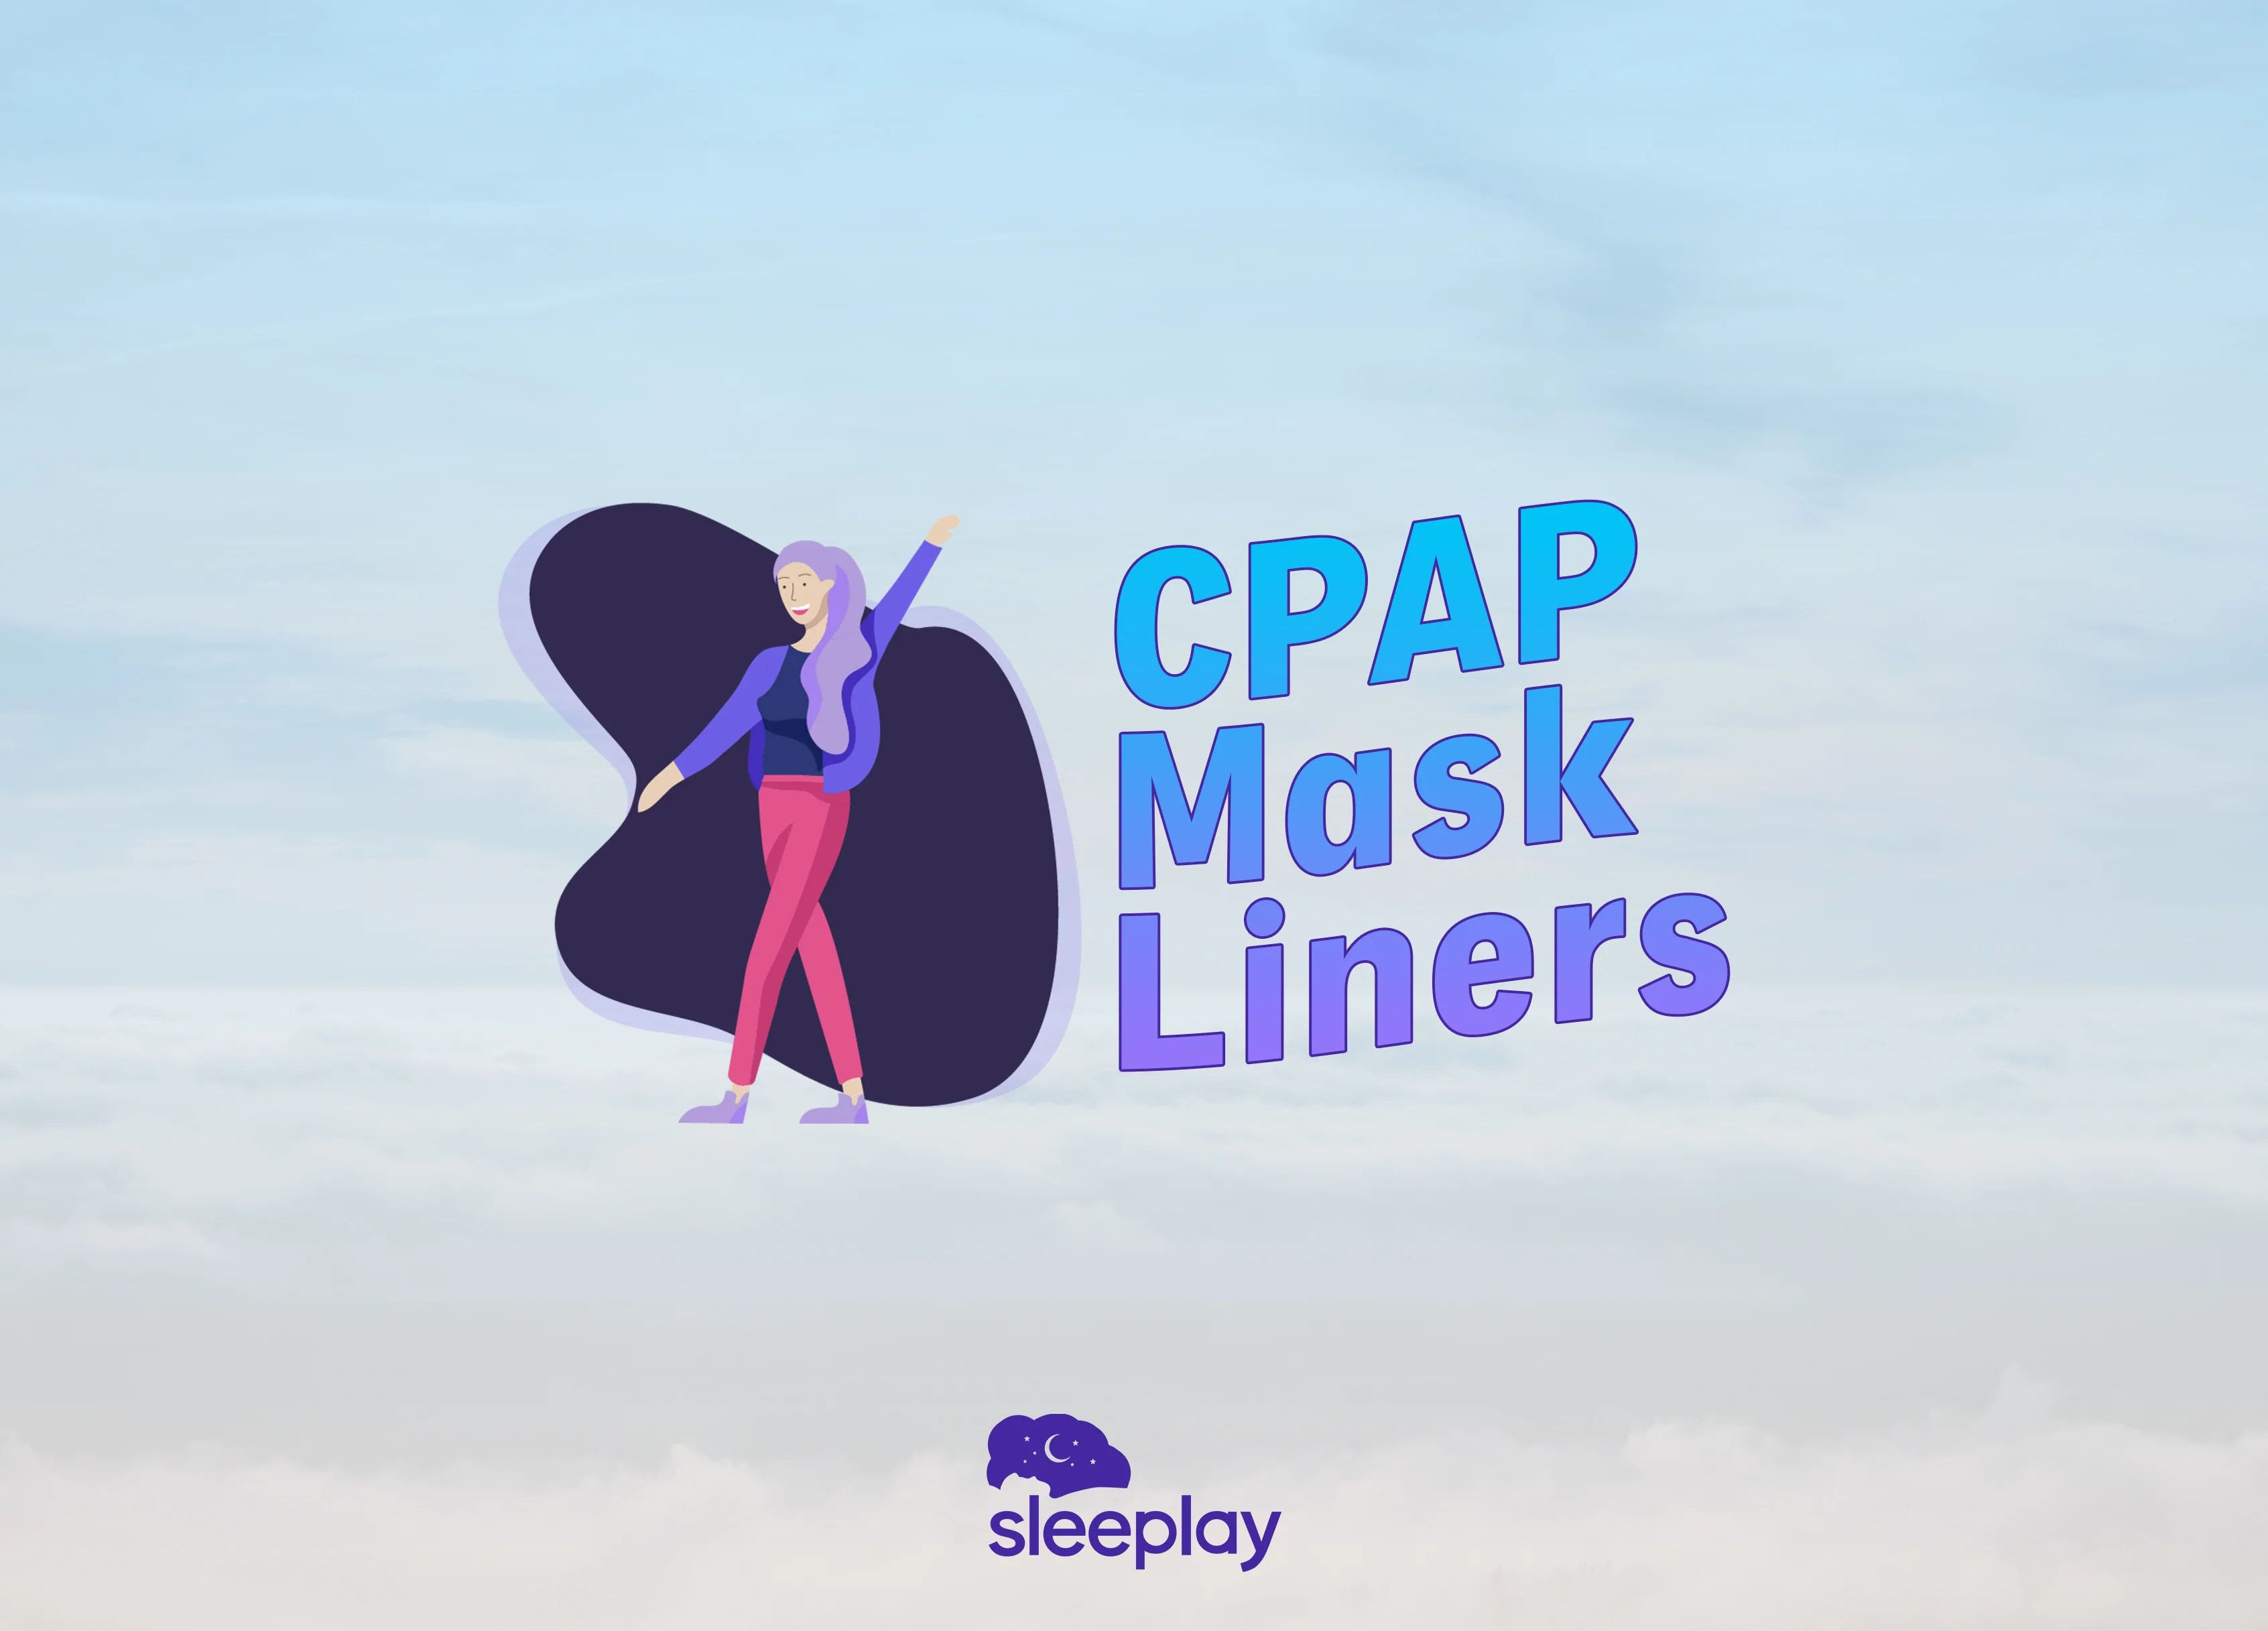 the best cpap mask liners to prevent